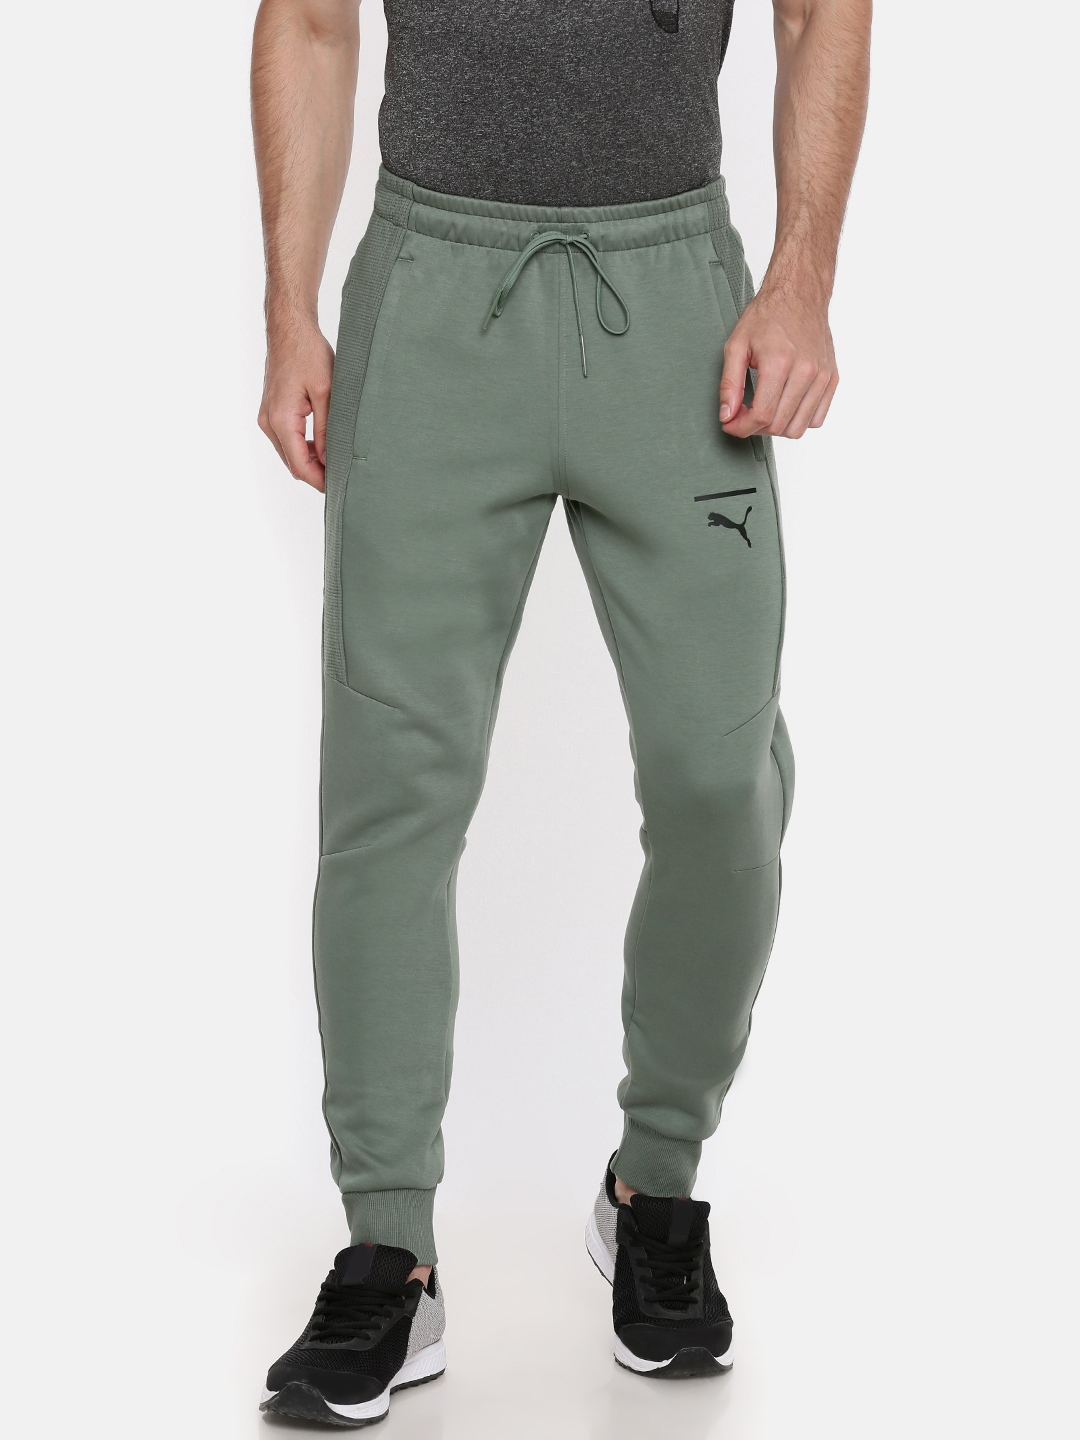 4be9a82d6934 Buy Puma Green Pace Slim Fit Joggers - Track Pants for Men 7072761 ...